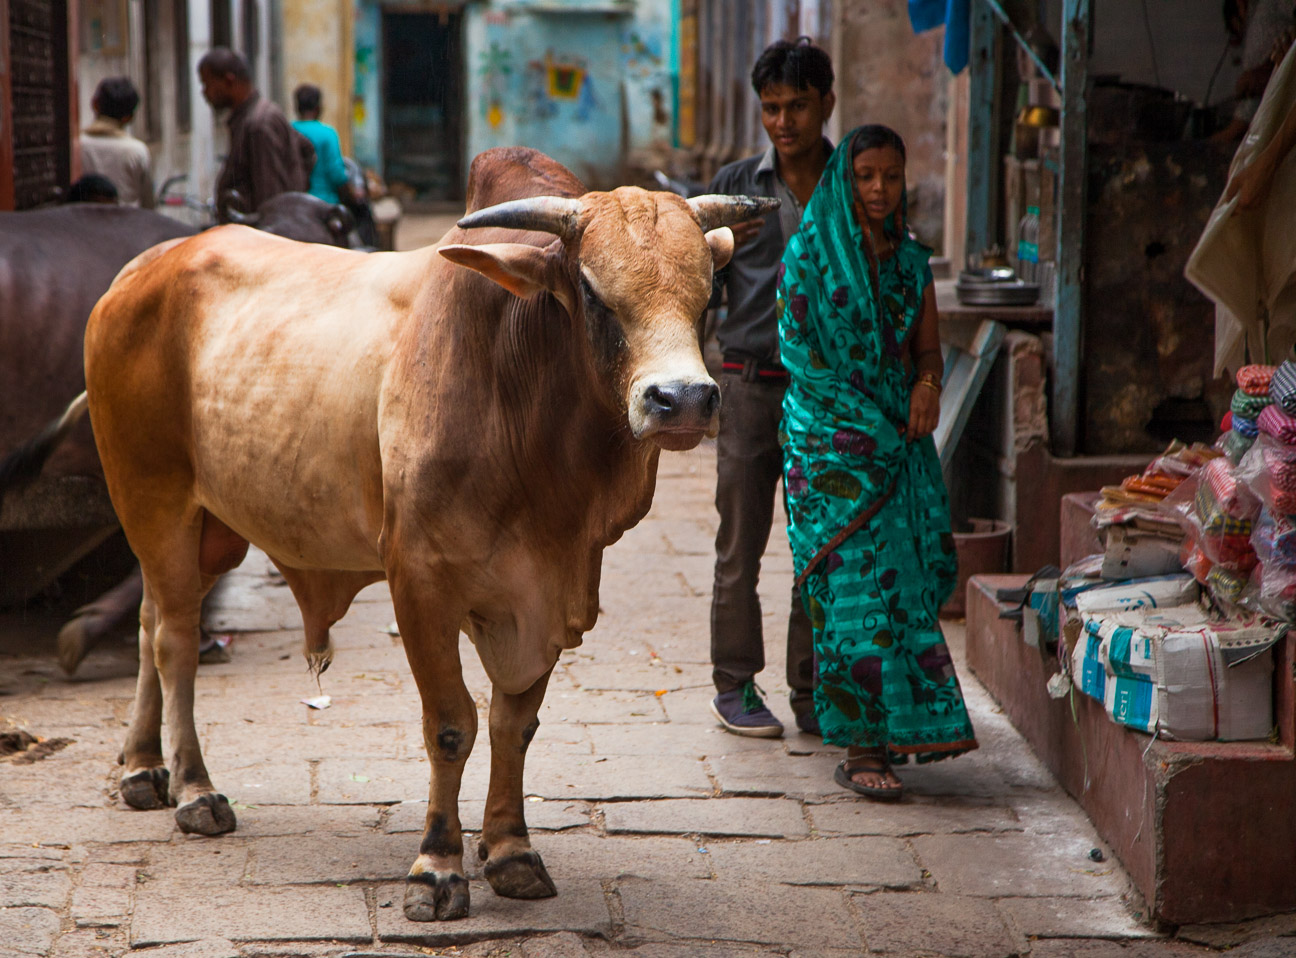 This big fellow commanded some respect in the ghats (alleyways) of Varanasi.